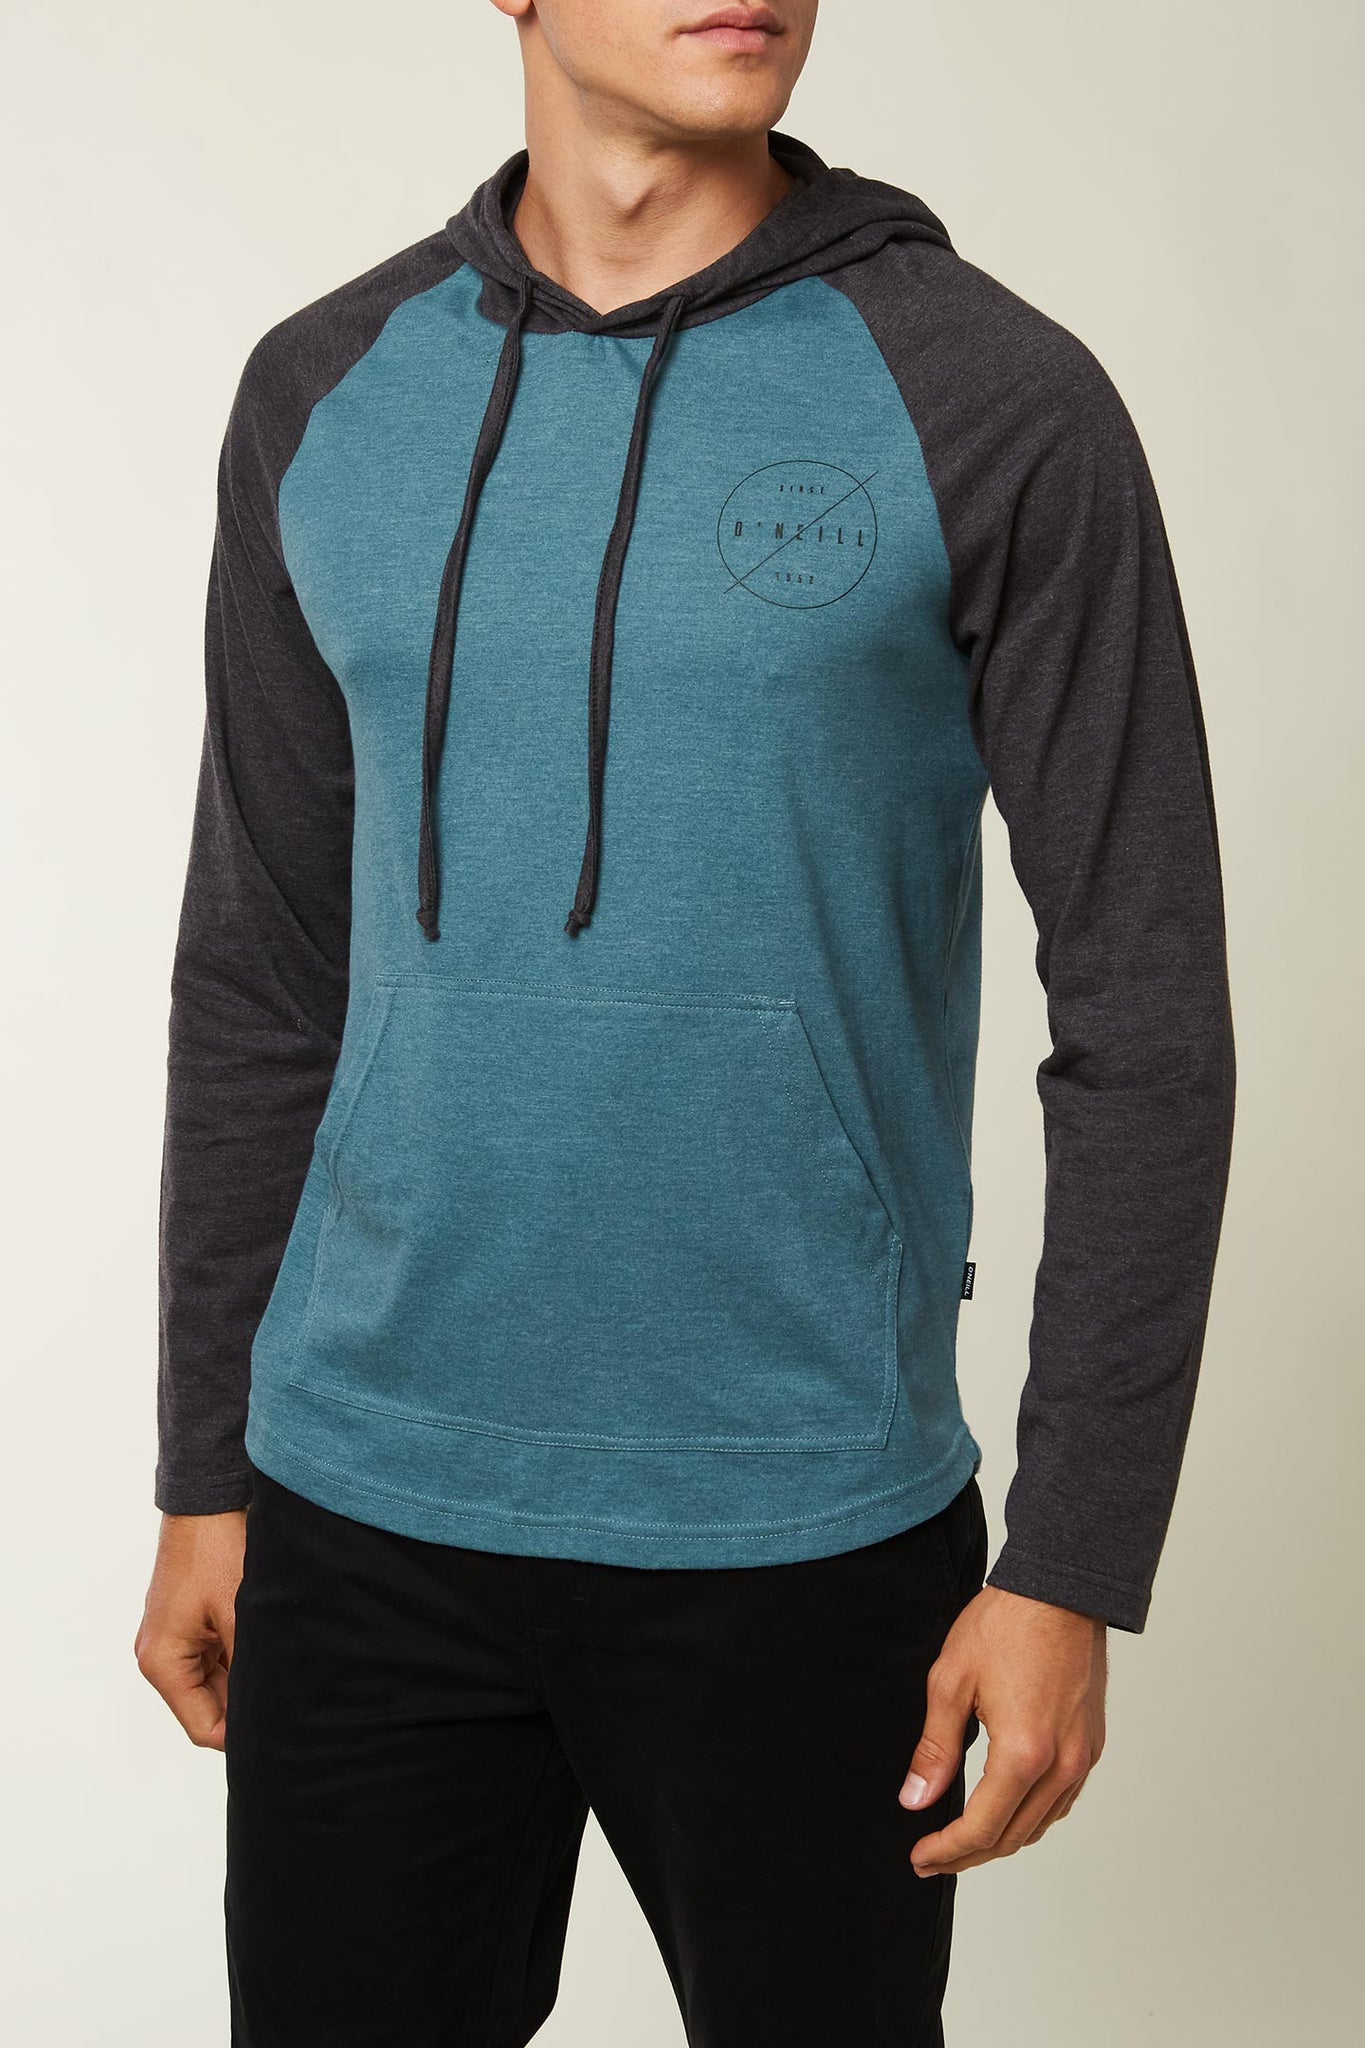 Fields Hooded Pullover - Turquoise | O'Neill